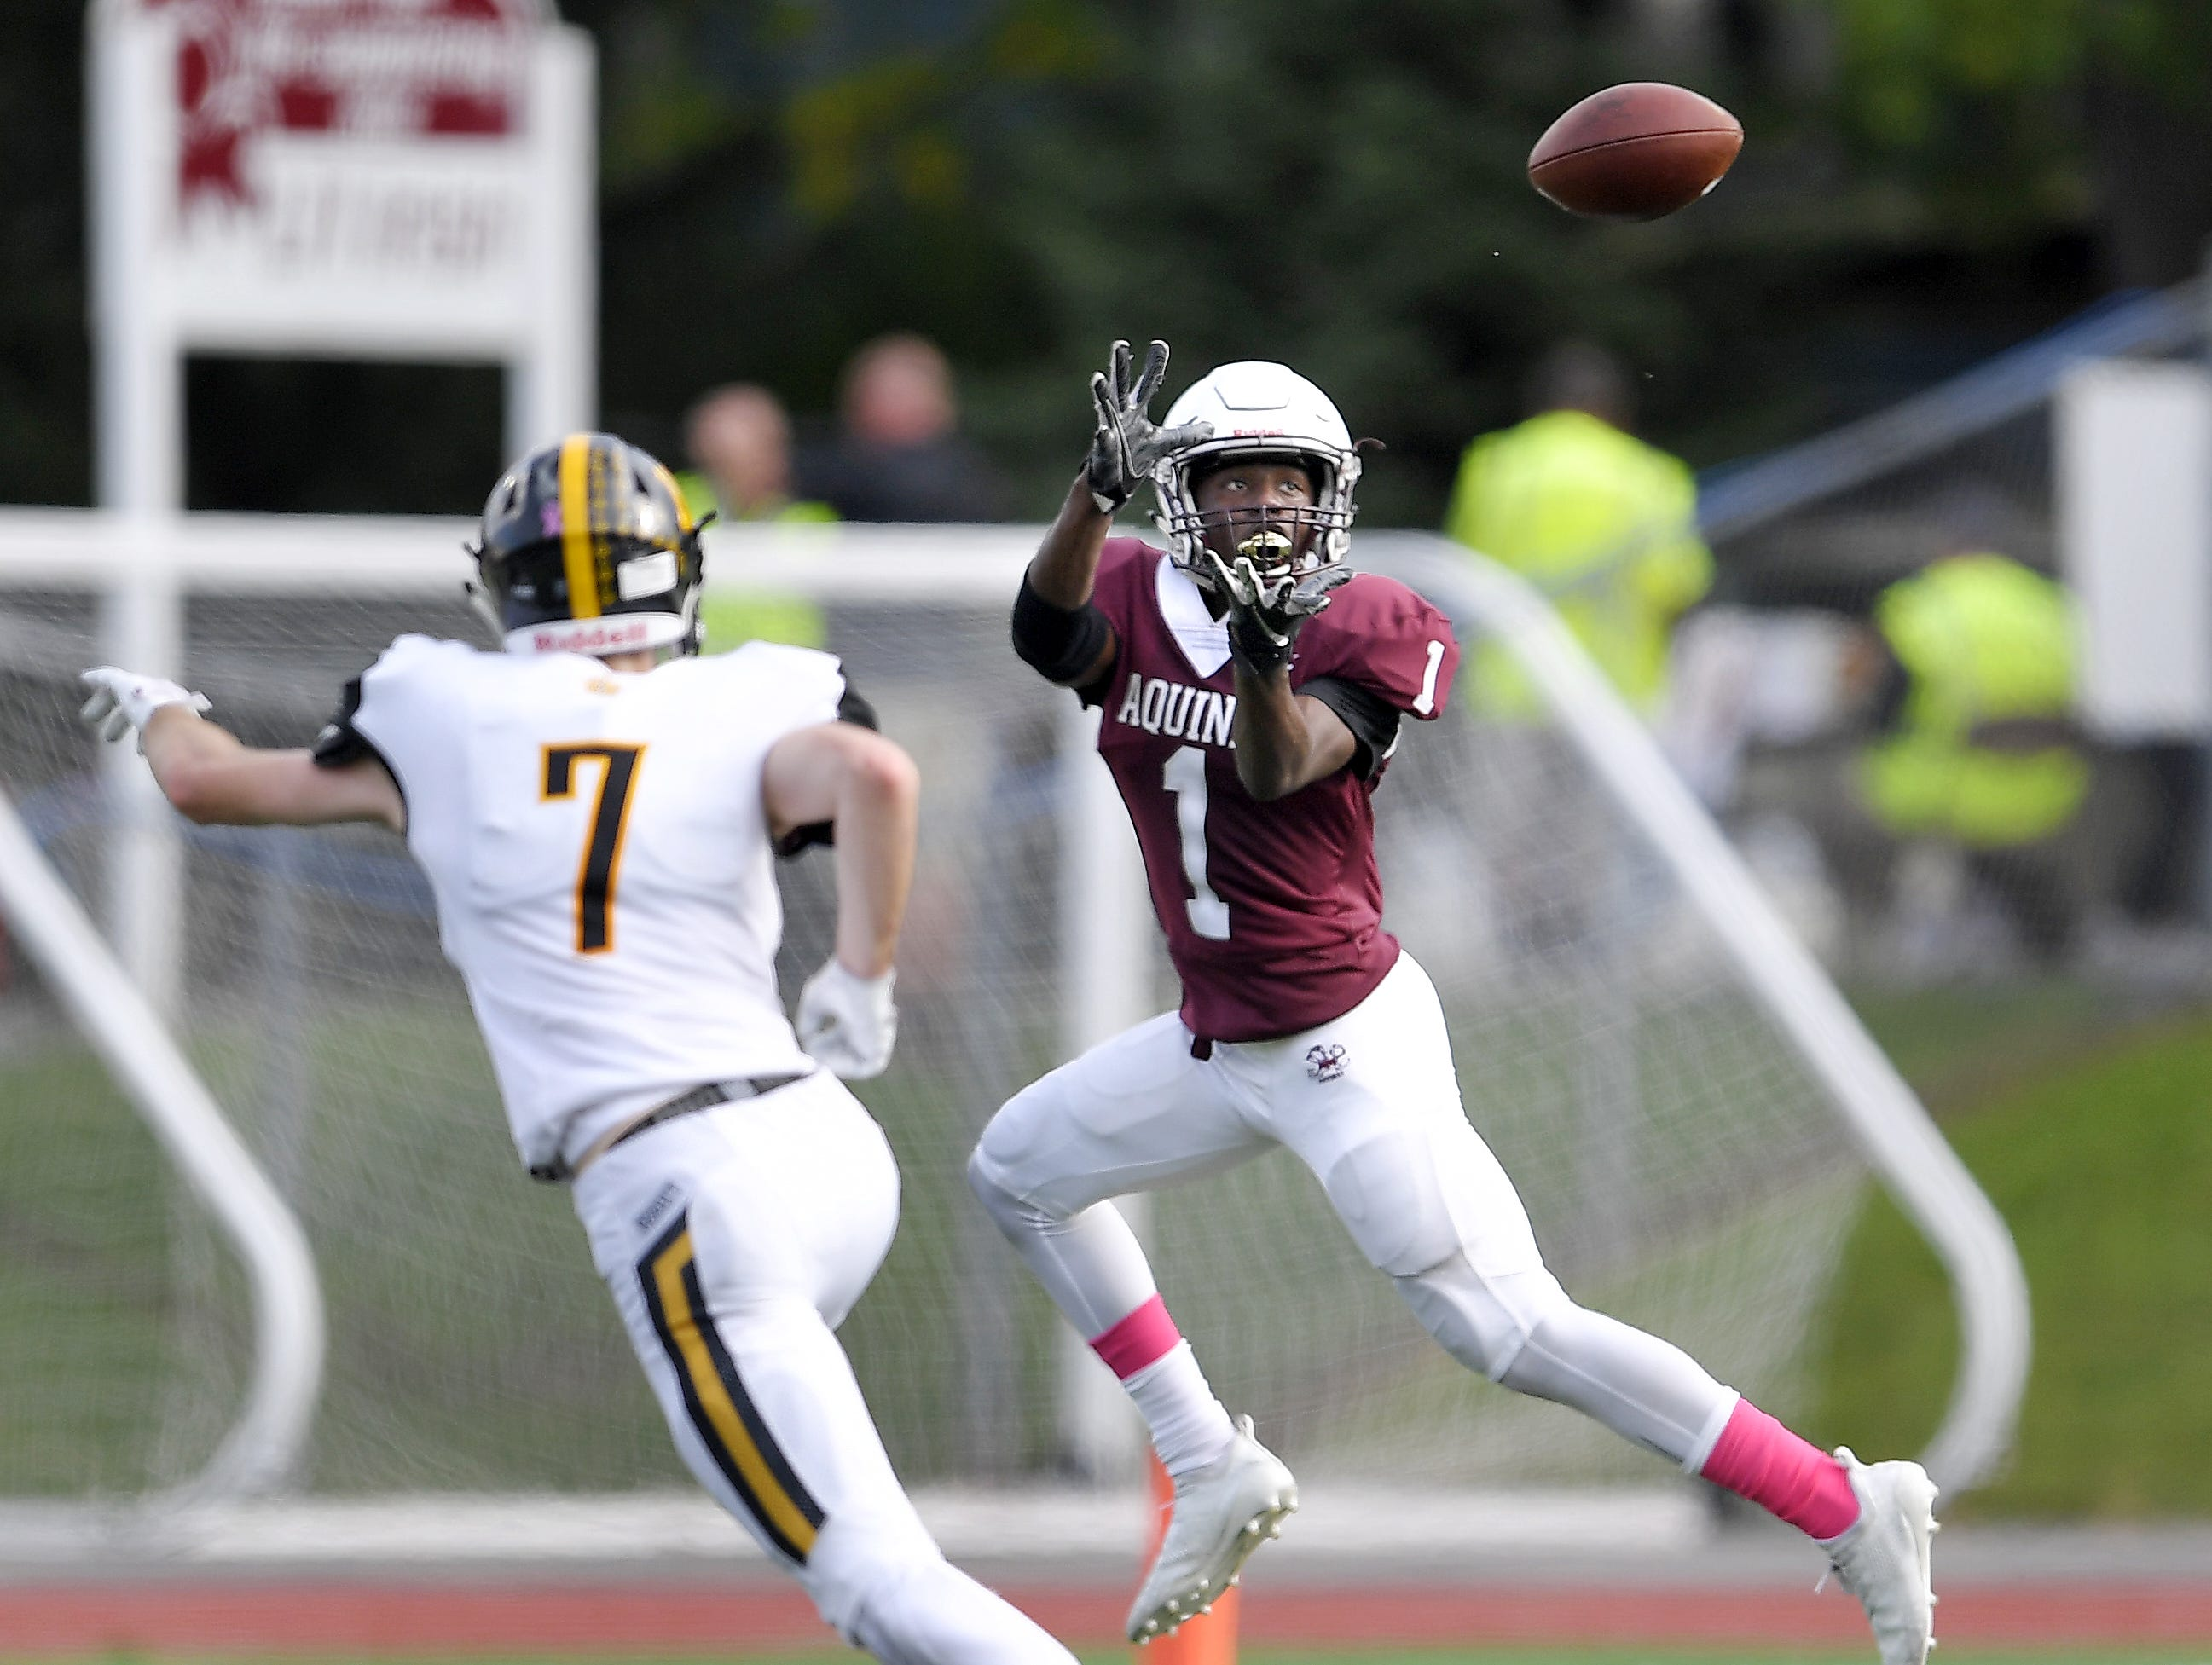 Aquinas' Ulysees Russell, right, makes a catch in front of McQuaid's Mike Maloney during a regular season game played at Aquinas Institute, Saturday, Oct. 6, 2018. Aquinas beat McQuaid 22-19.